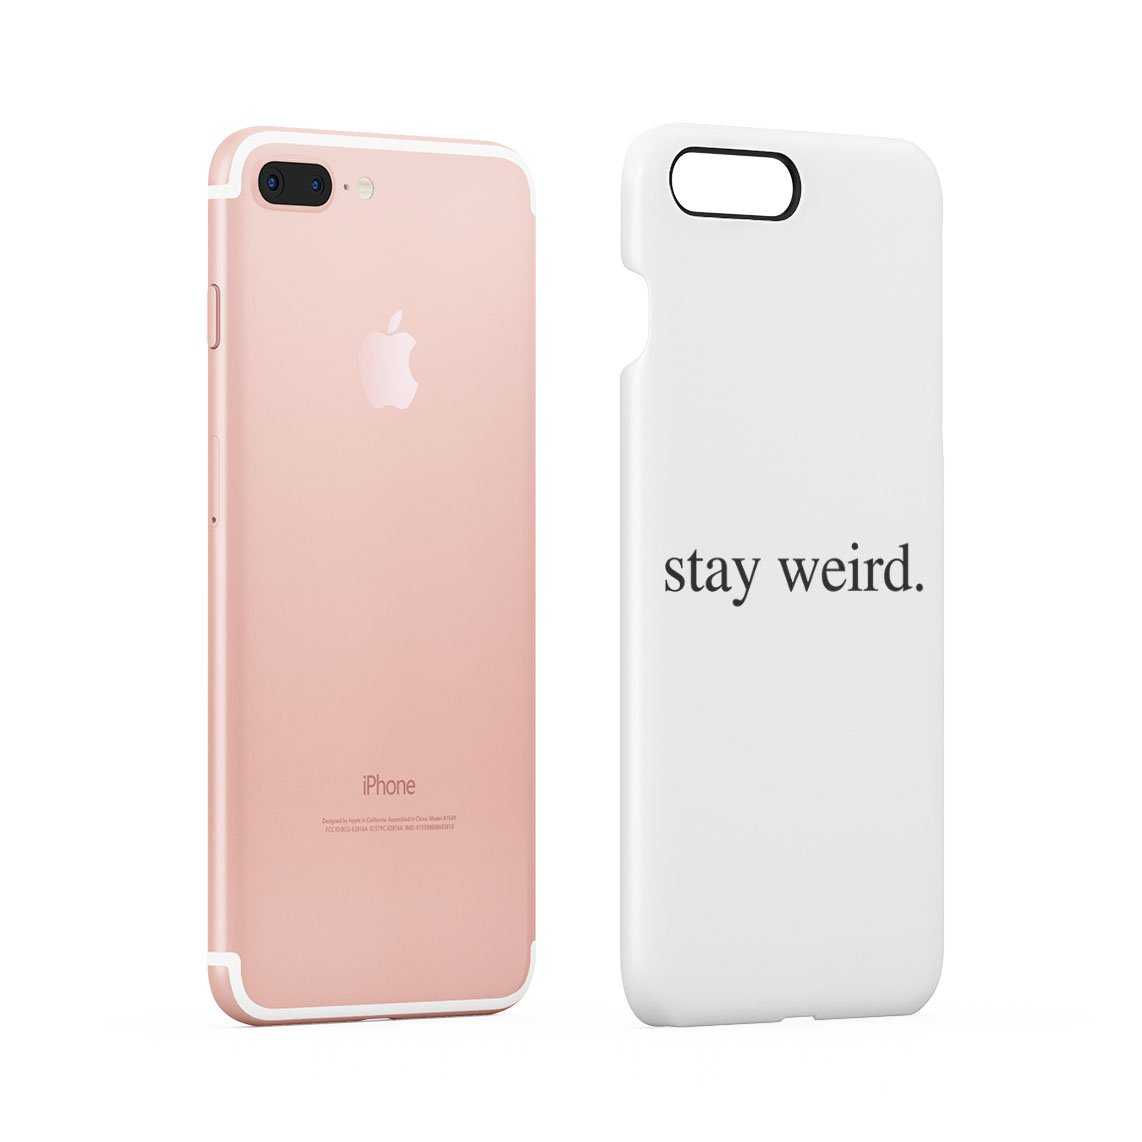 Stay Weird White Tumblr Cool Swag Quote Hard Thin Plastic Phone Case Cover For iPhone 7 Plus & iPhone 8 Plus: Amazon.es: Electrónica